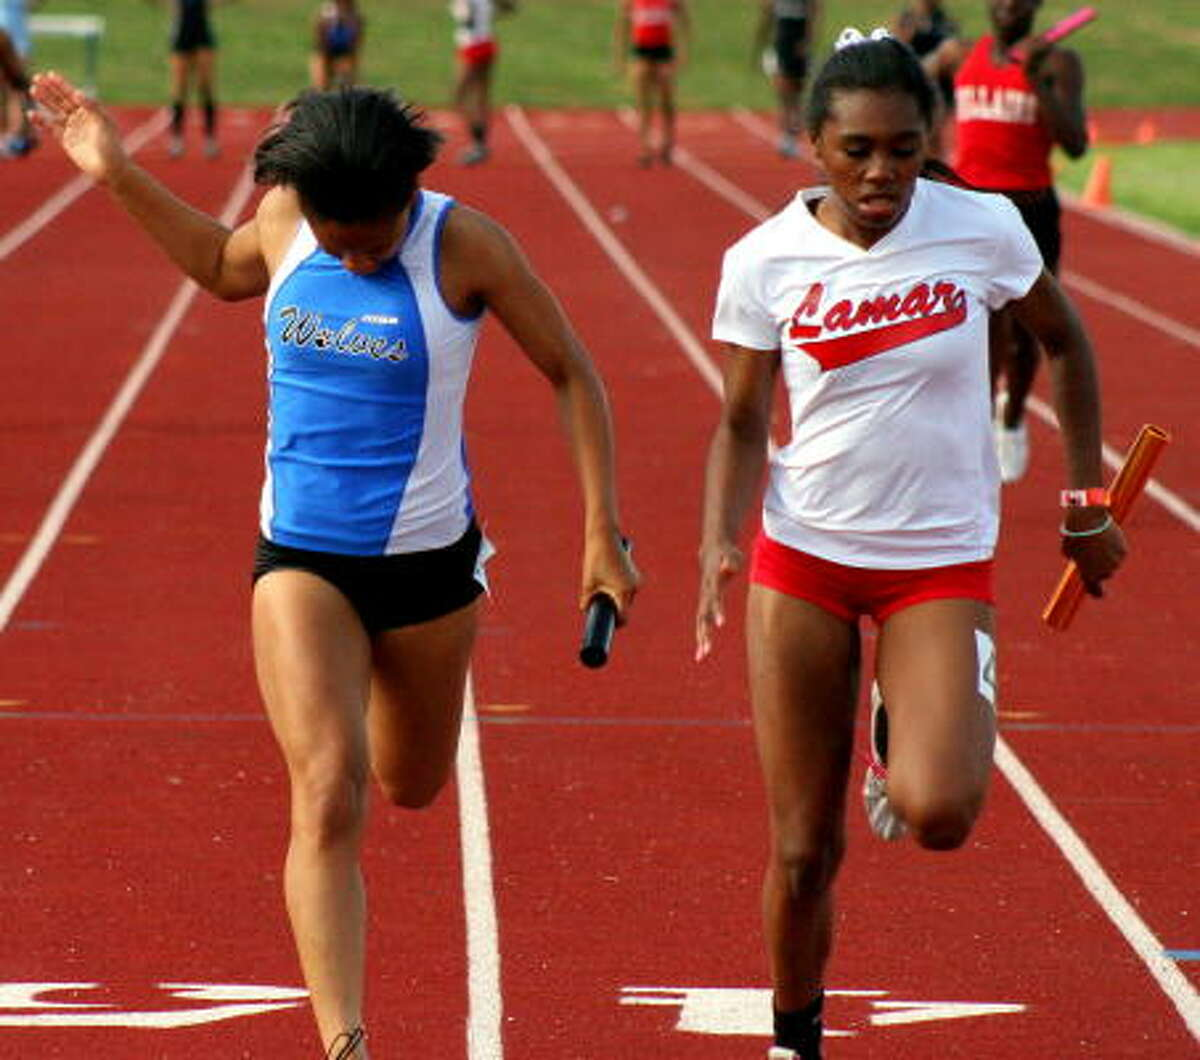 Lamar's Ayanne Magee, right, edges out Westside's Kirby Miller at the tape to take a 400-meter relay victory.